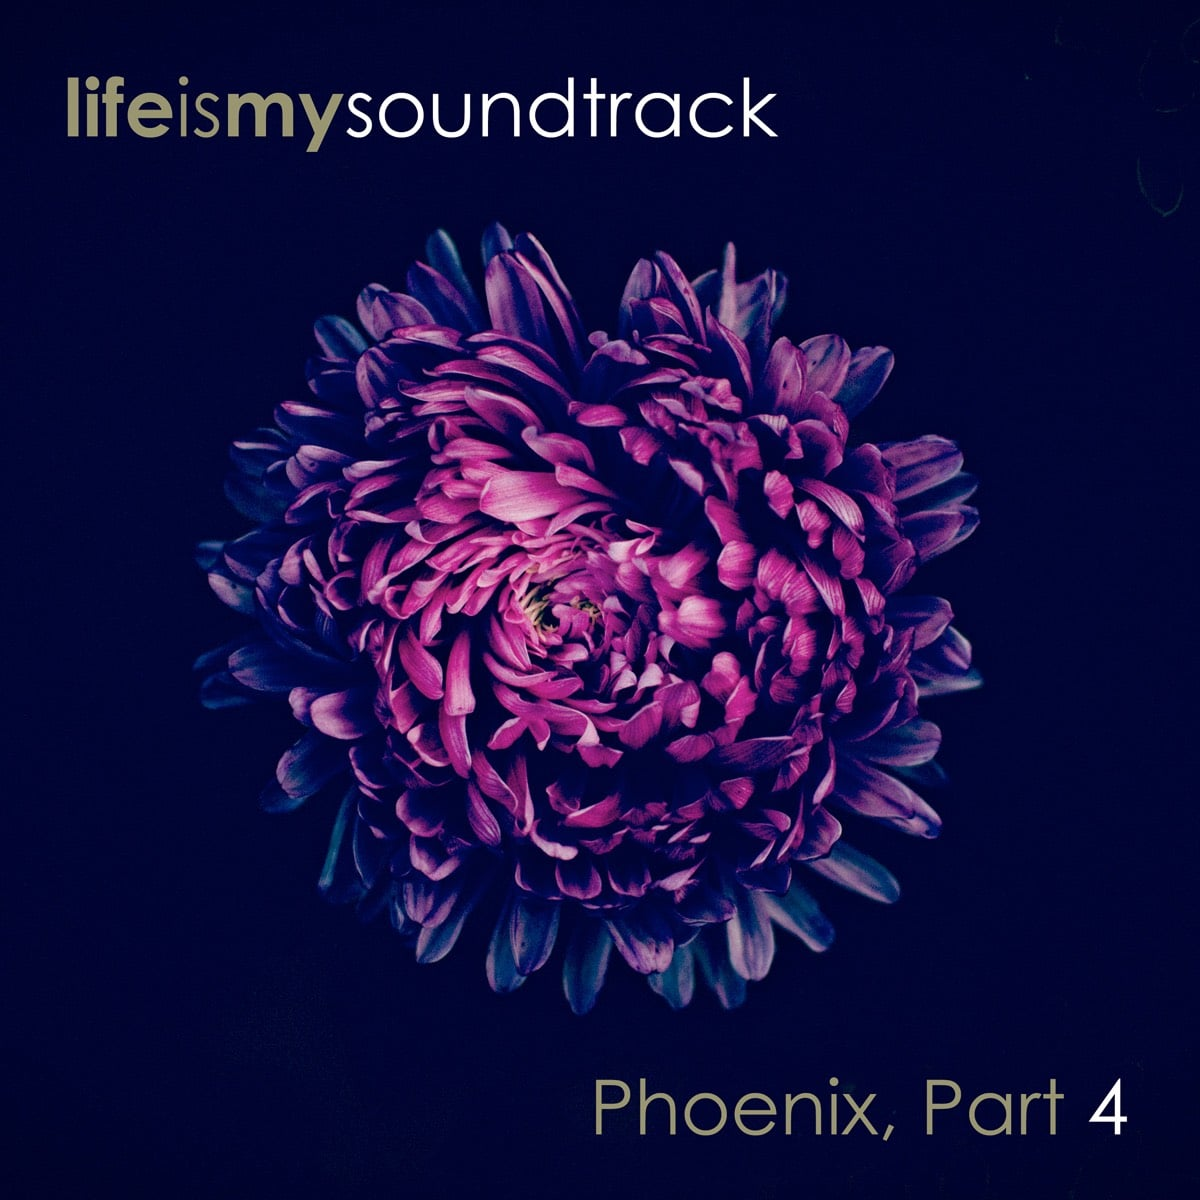 The album Phoenix, Part 4 by Life Is My Soundtrack - Part 5 of a collection of songs created over several years, but never finished until now